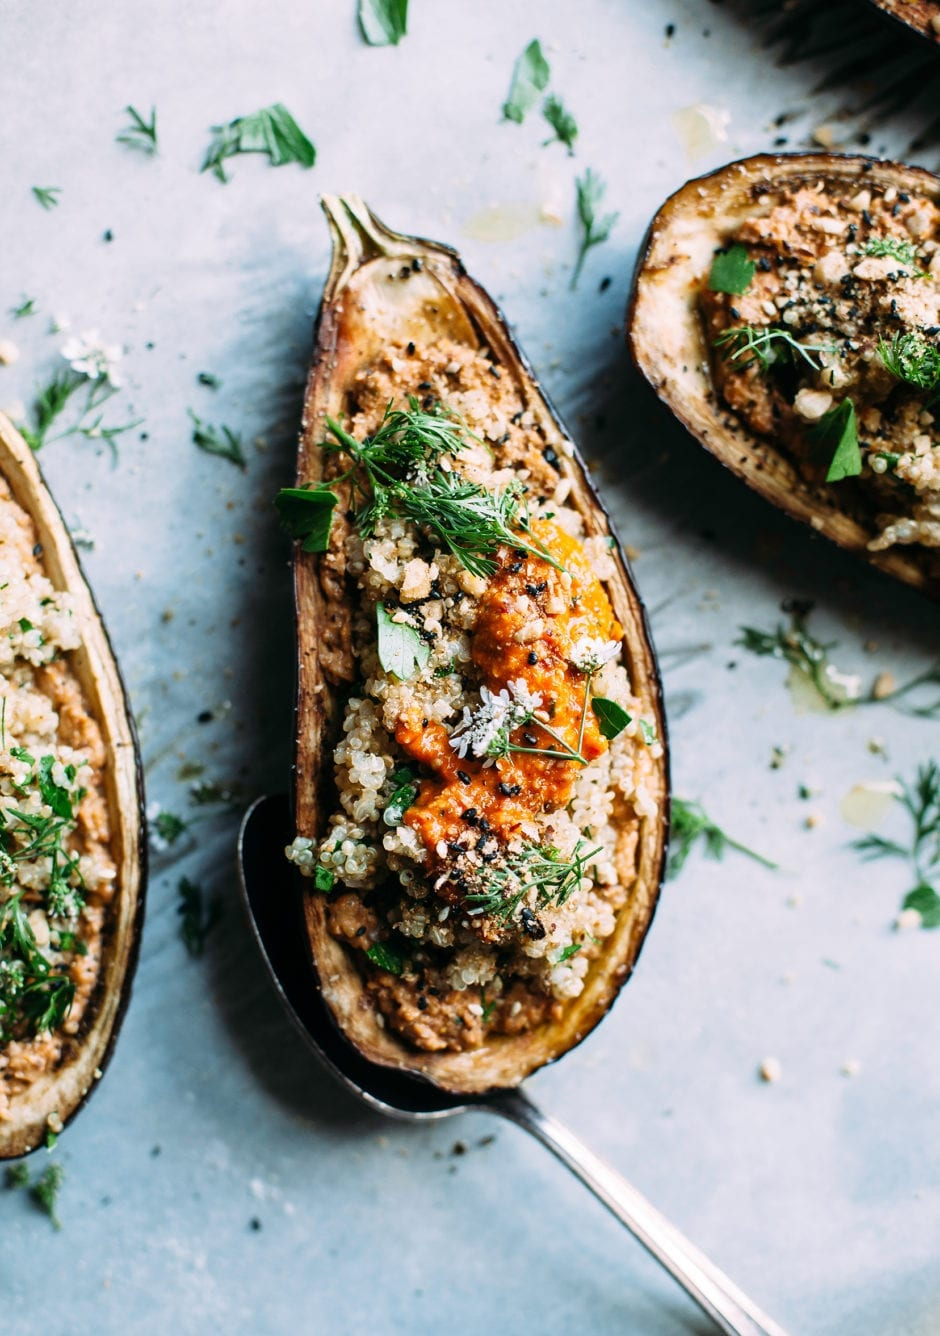 STUFFED EGGPLANT WITH SUNFLOWER ROMESCO